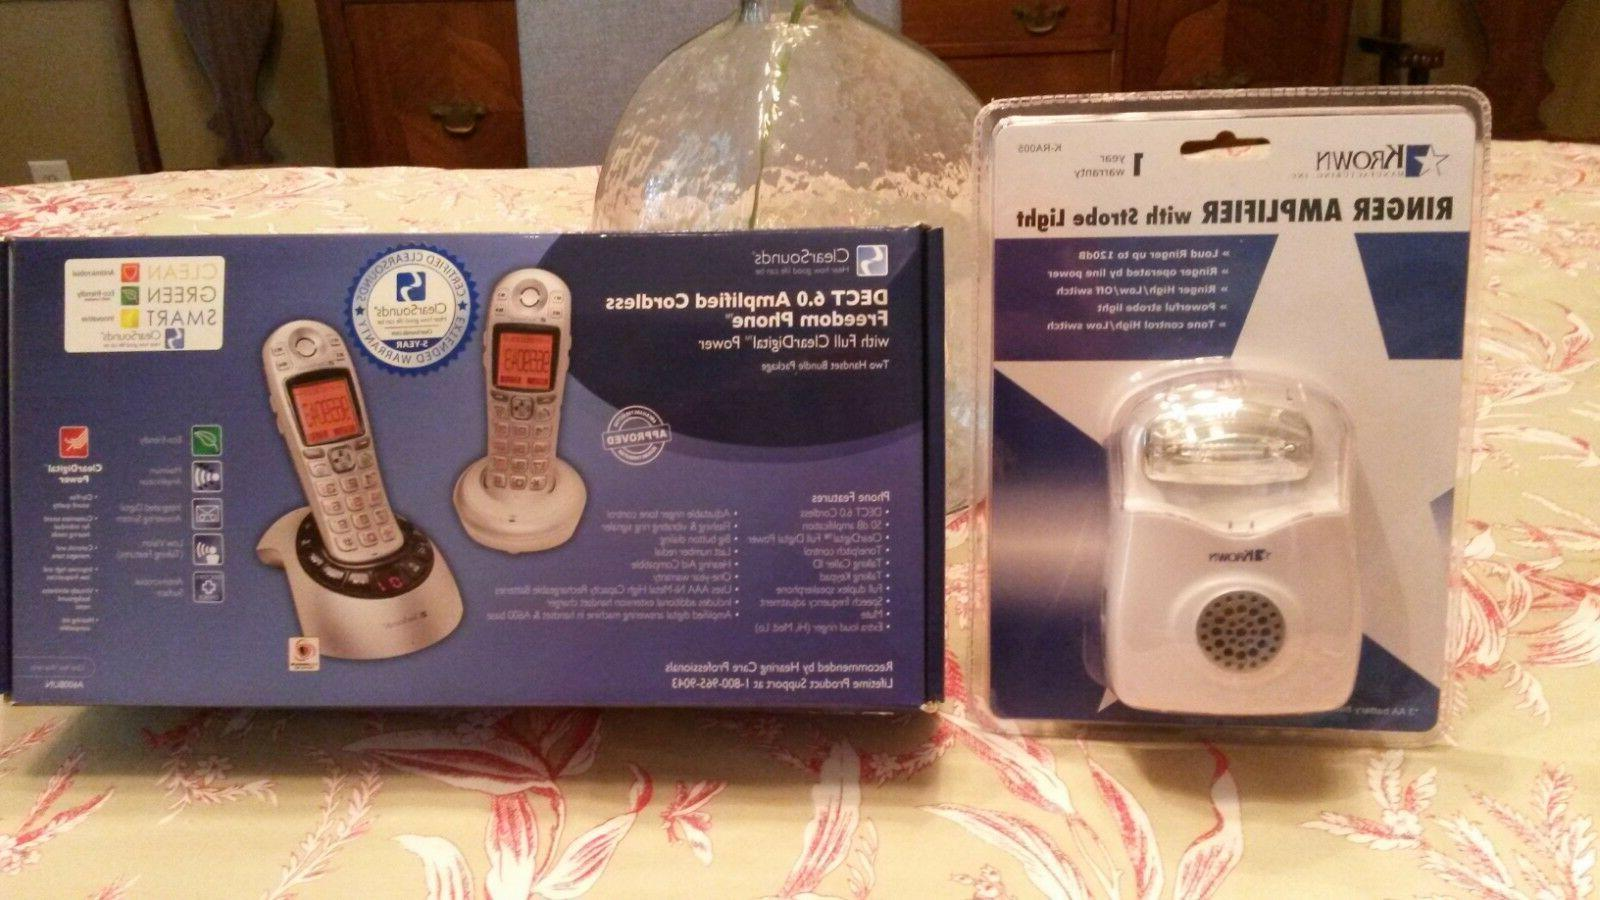 new 2 amplified cordless phones with strobe